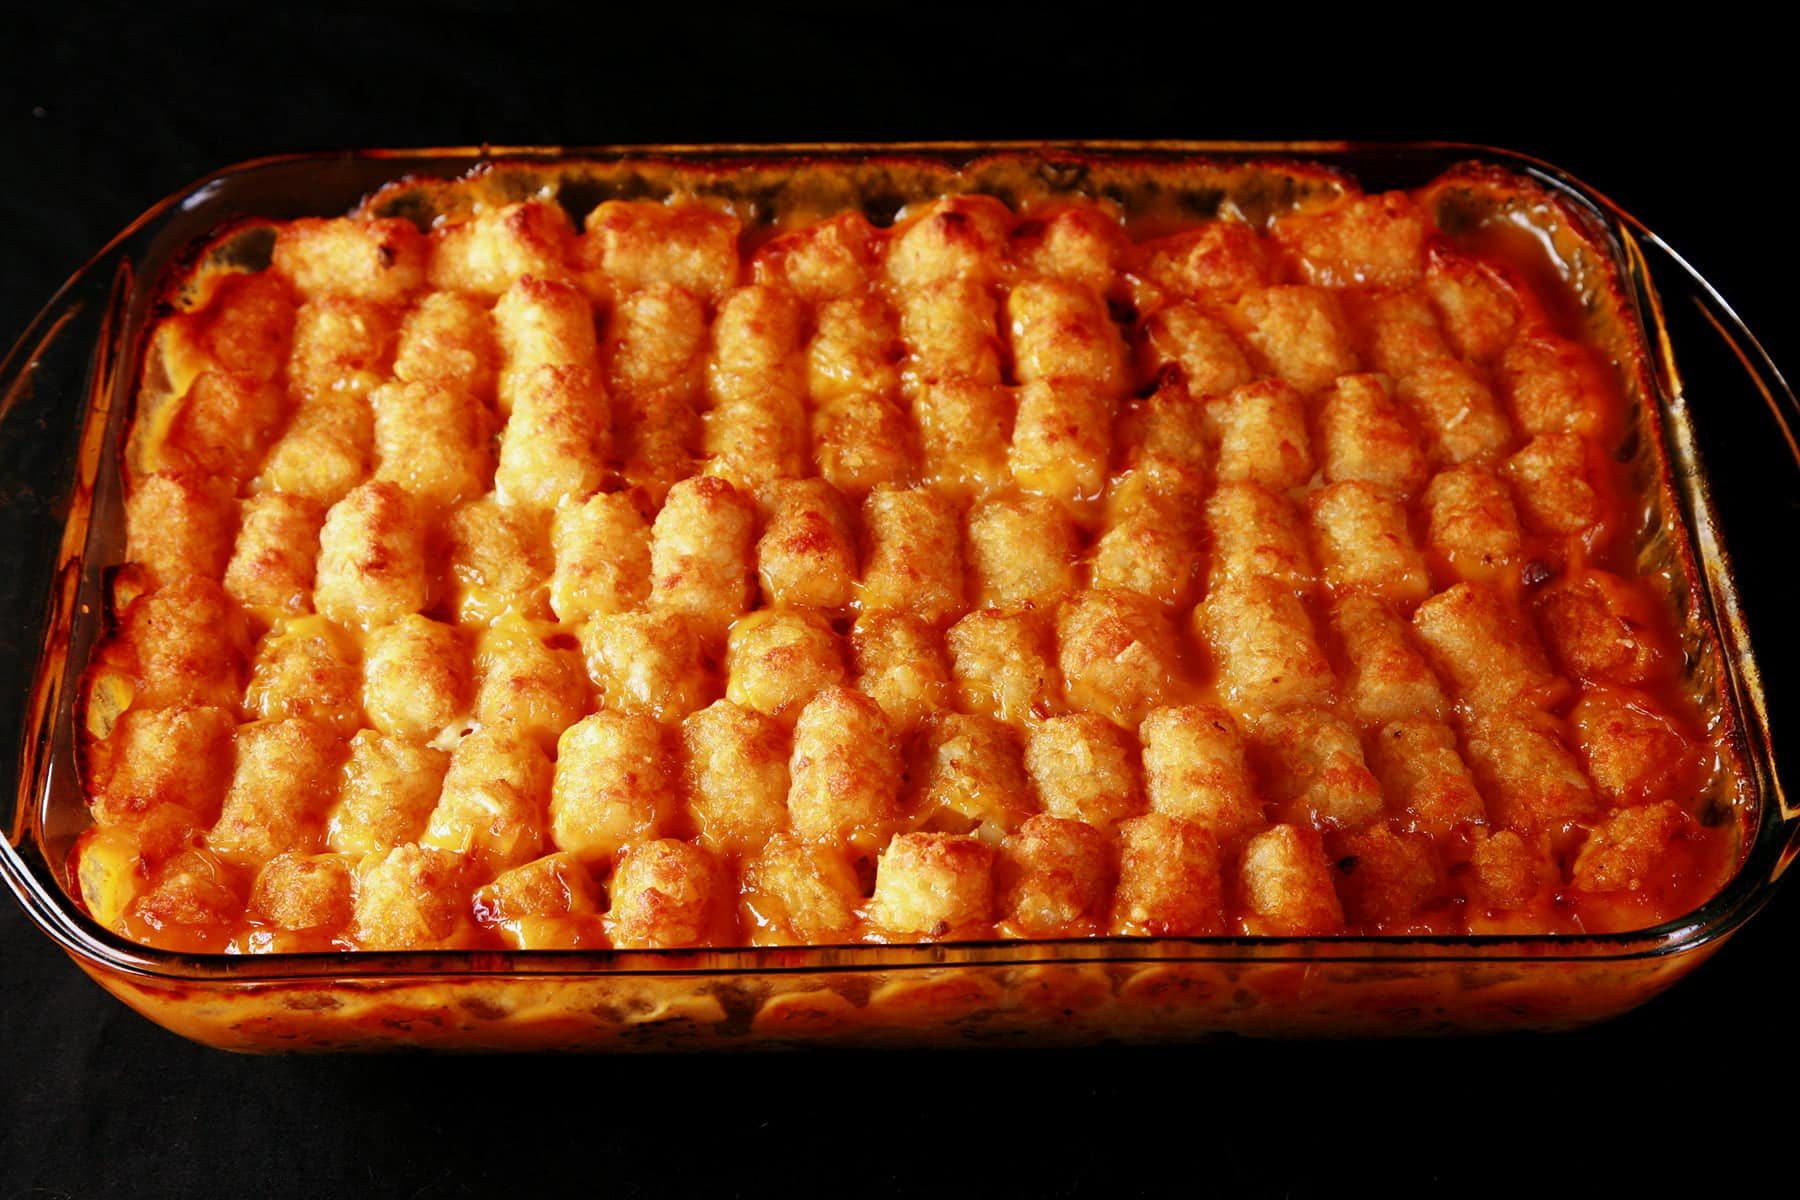 A rectangular glass baking pan with cooked tater tot hotdish.